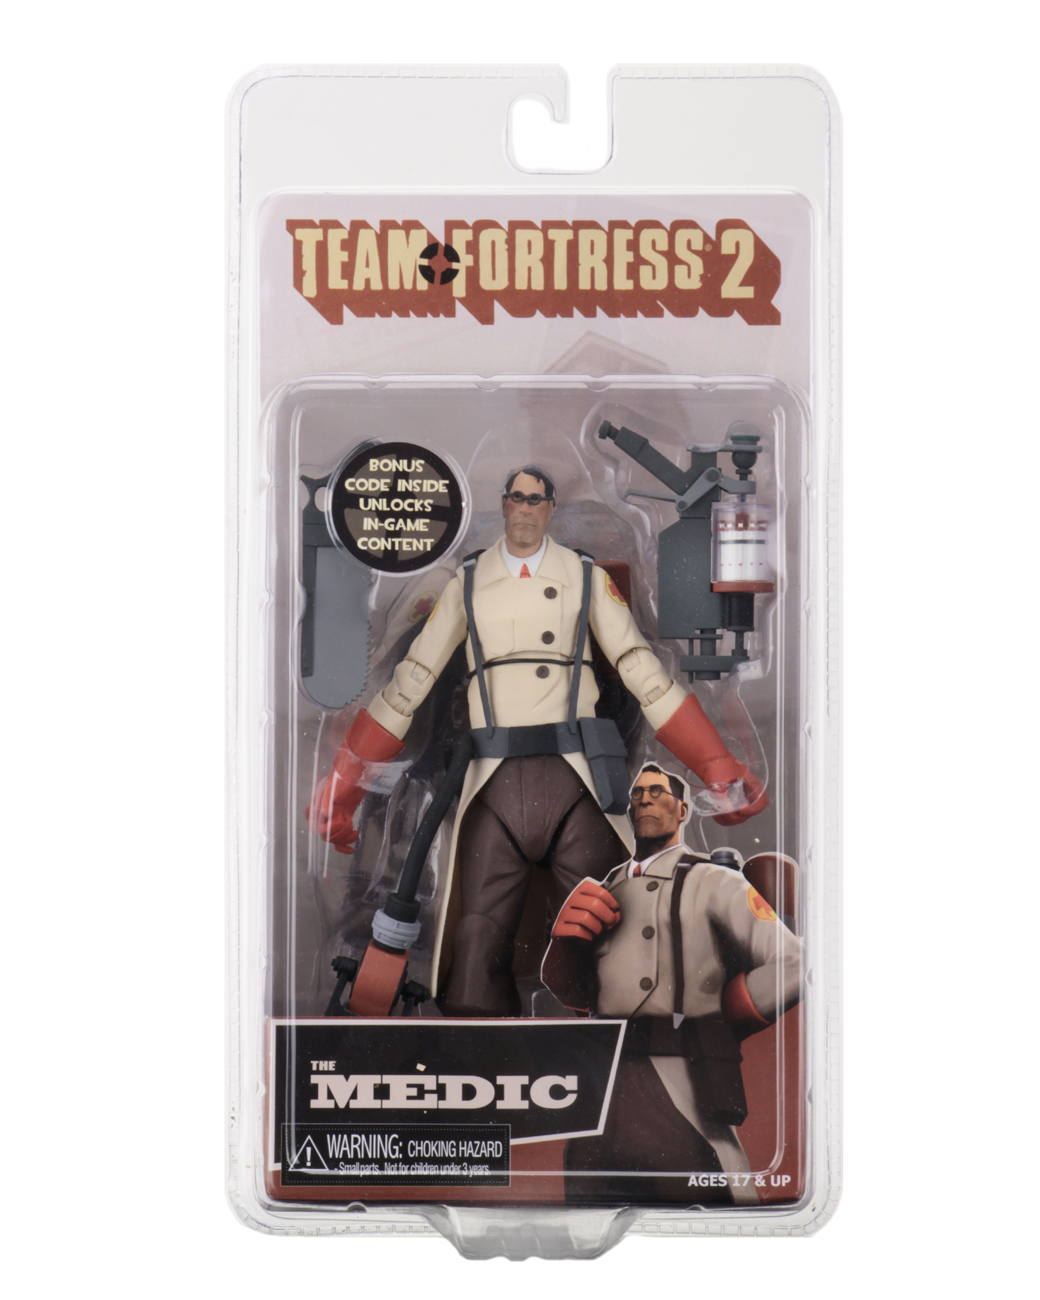 251 & Shipping This Week u2013 Team Fortress 2 Series 4 RED Assortment!